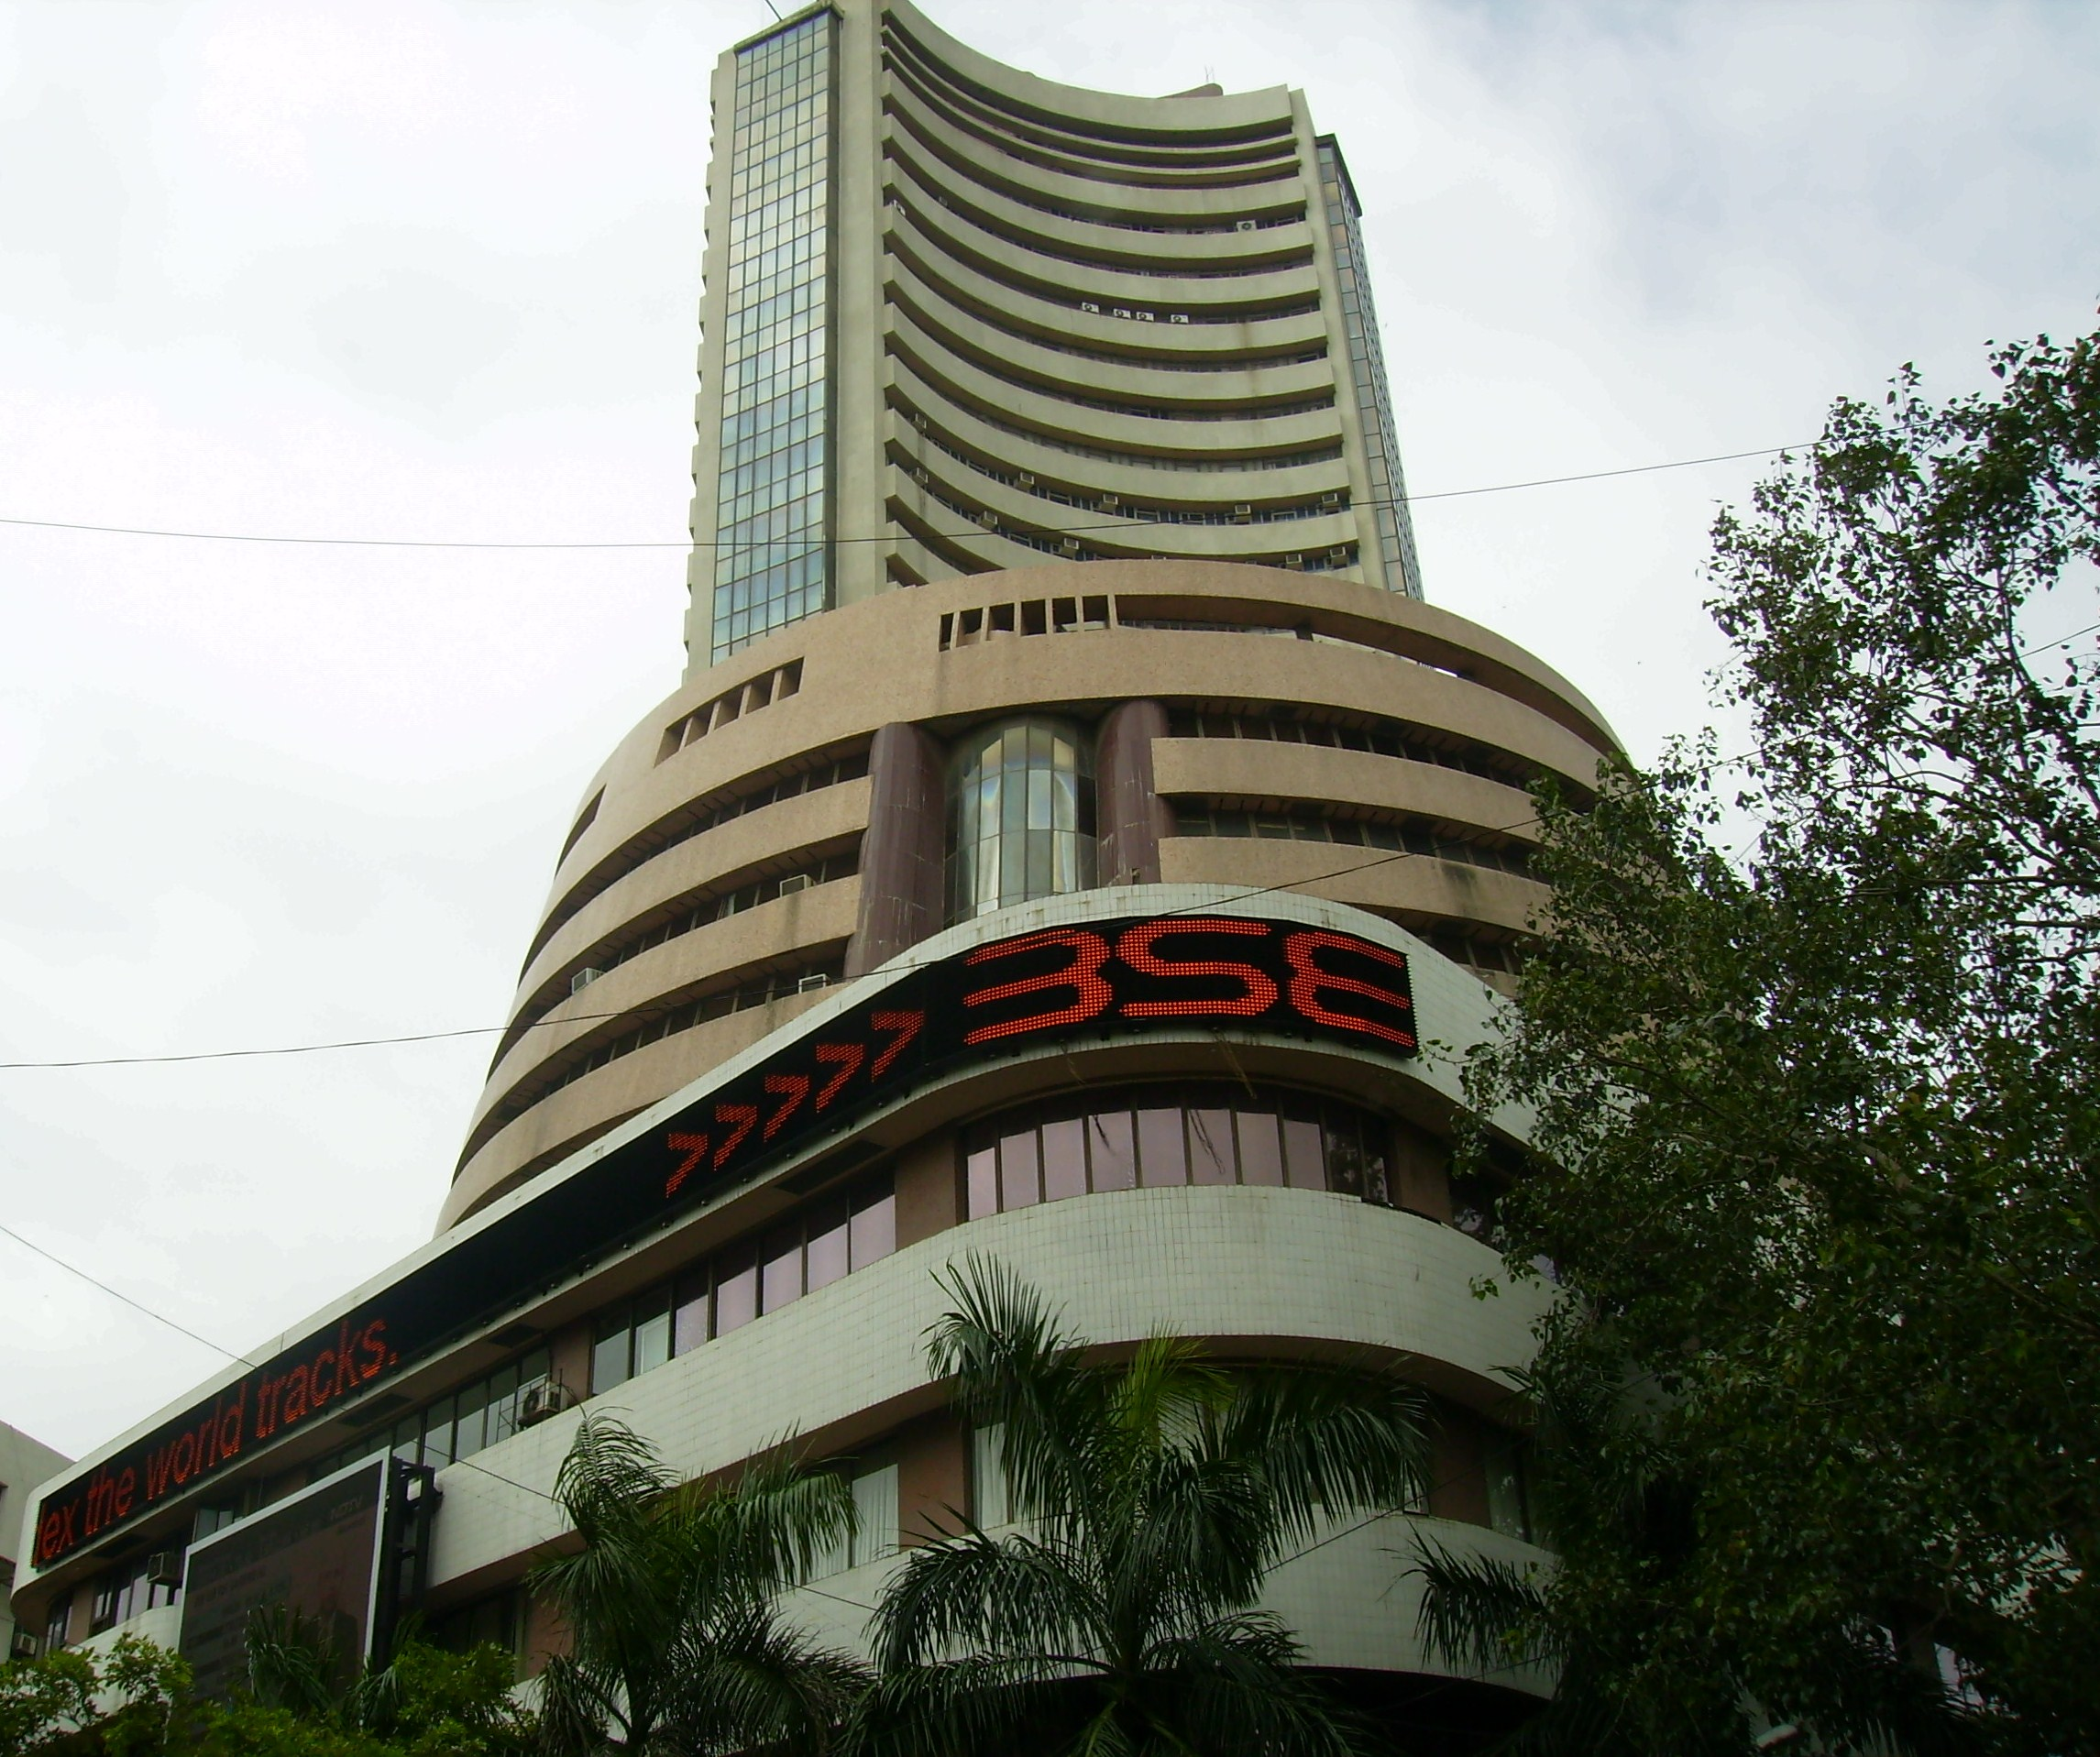 File:BSE - Bombay Stock Exchange Building.jpg - Wikimedia Commons